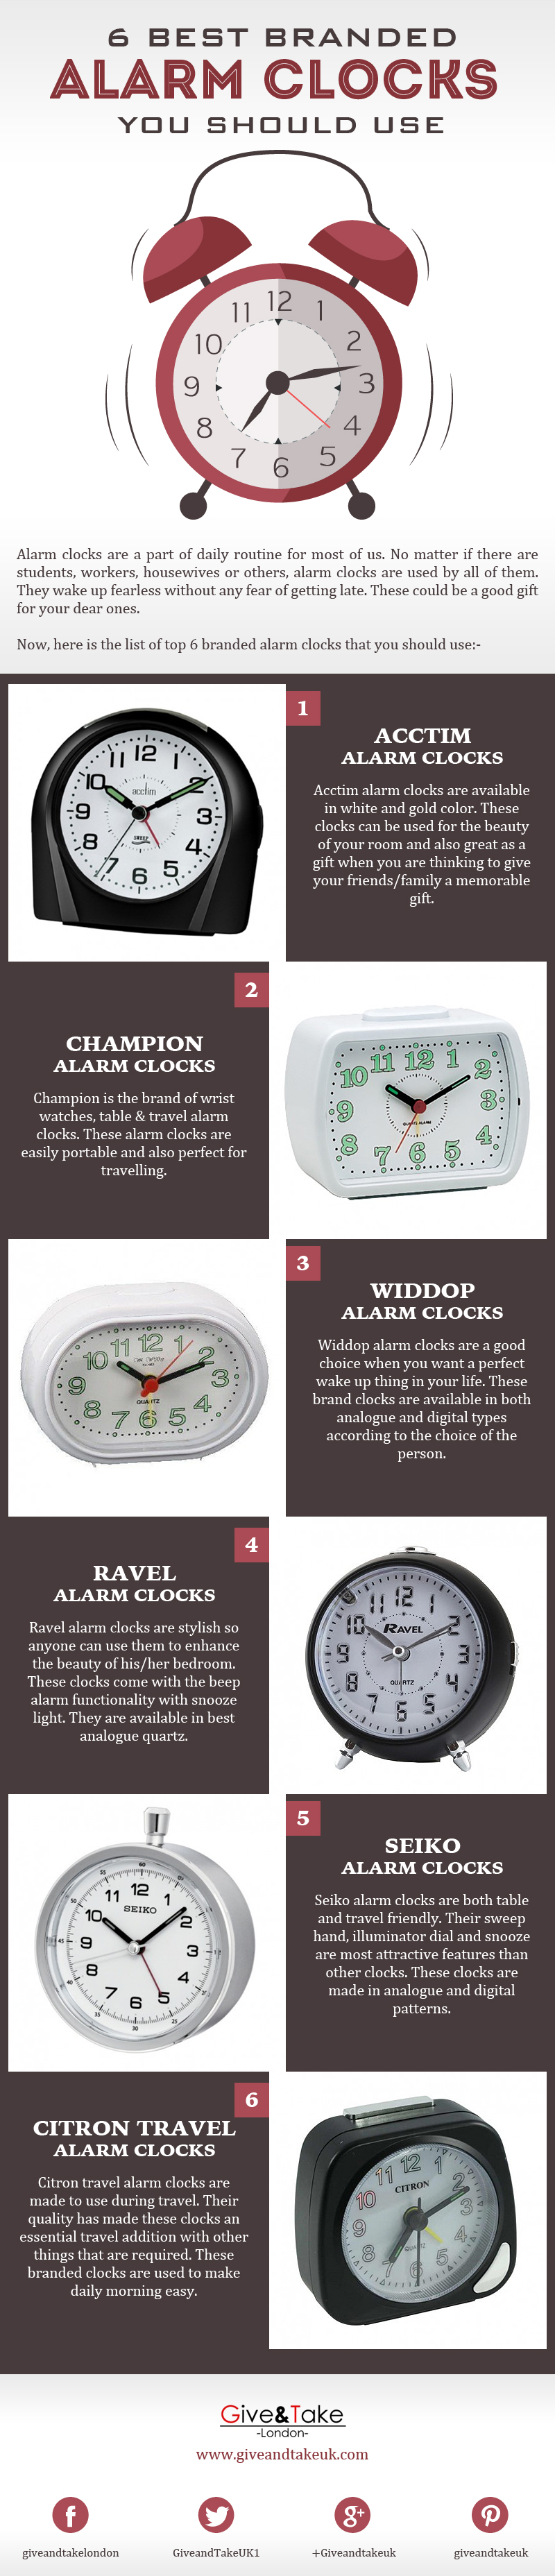 6 Best Branded Alarm Clocks You Should Use [Infographic]